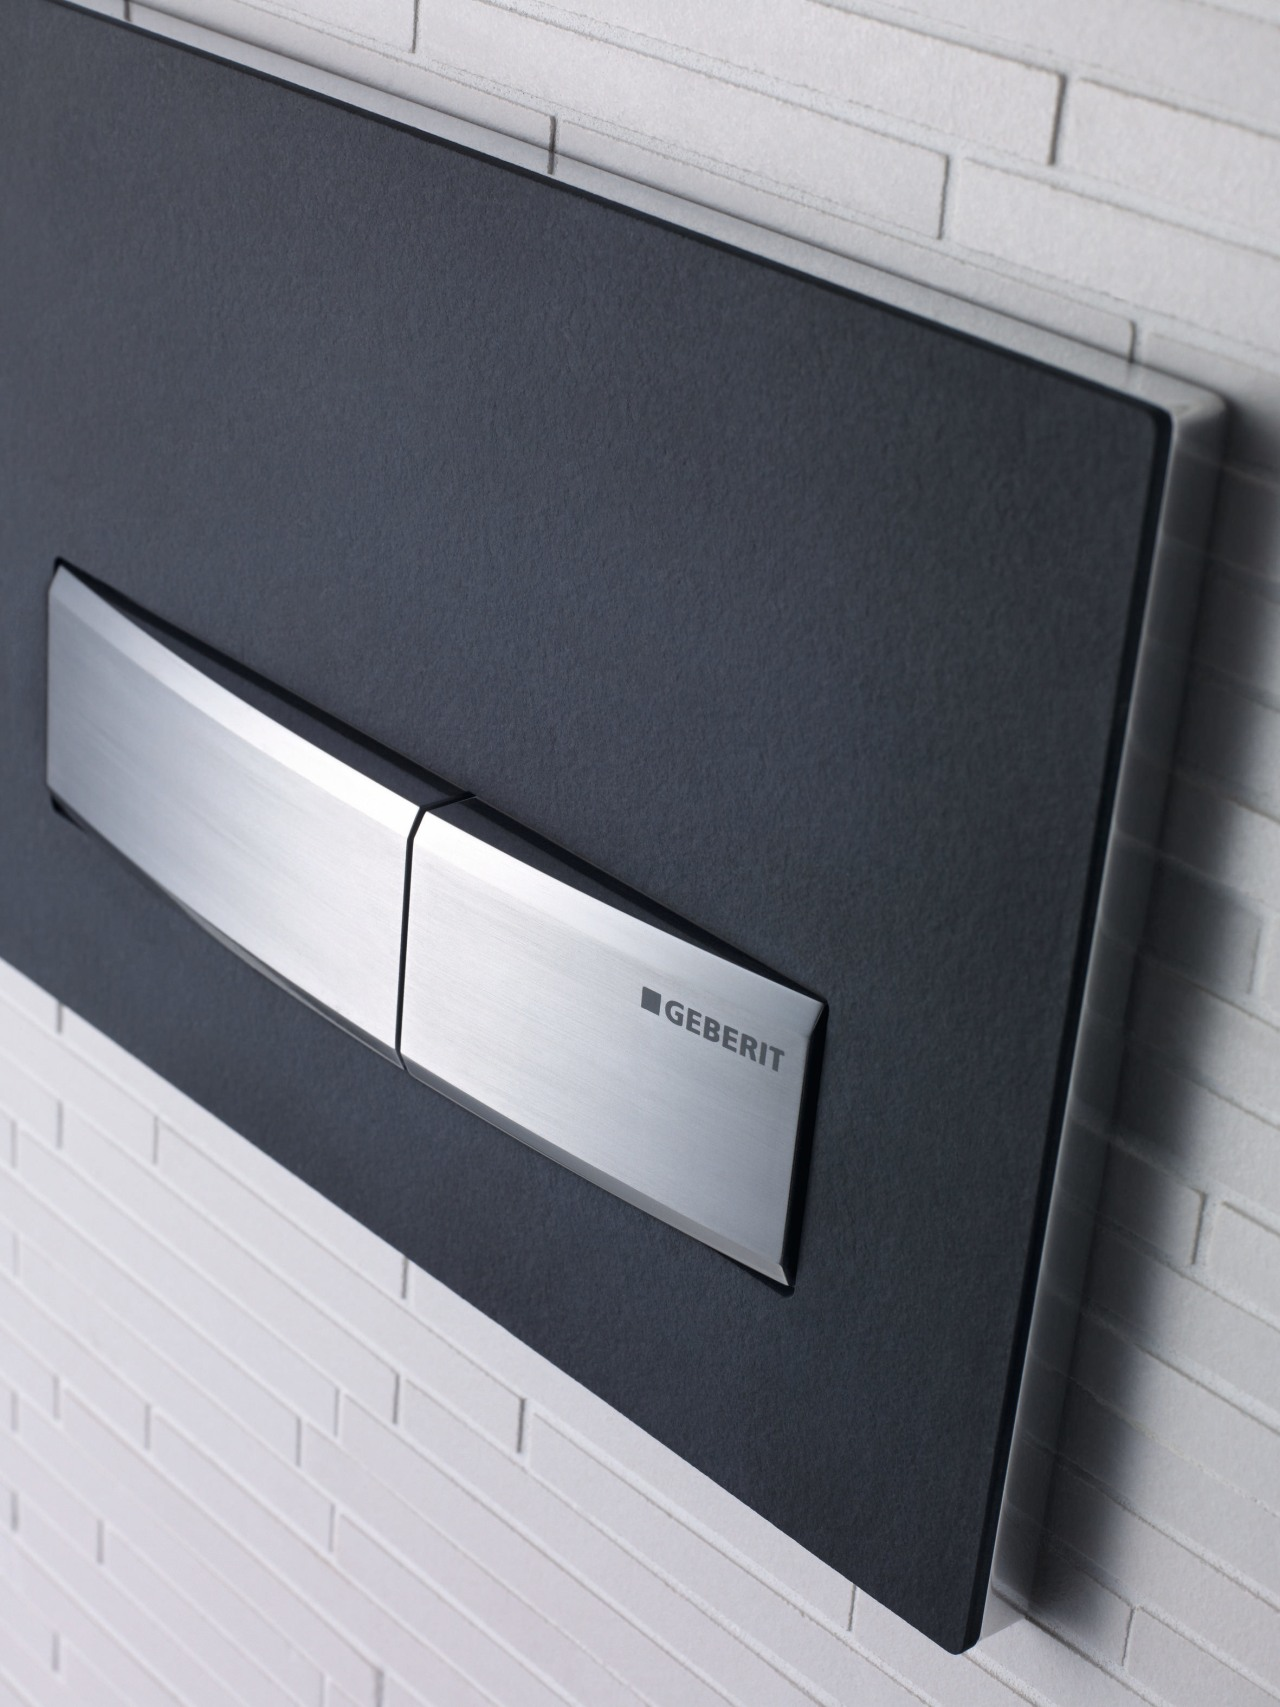 Inwall cistern specialist Geberit offers many different combinations automotive exterior, product, product design, black, white